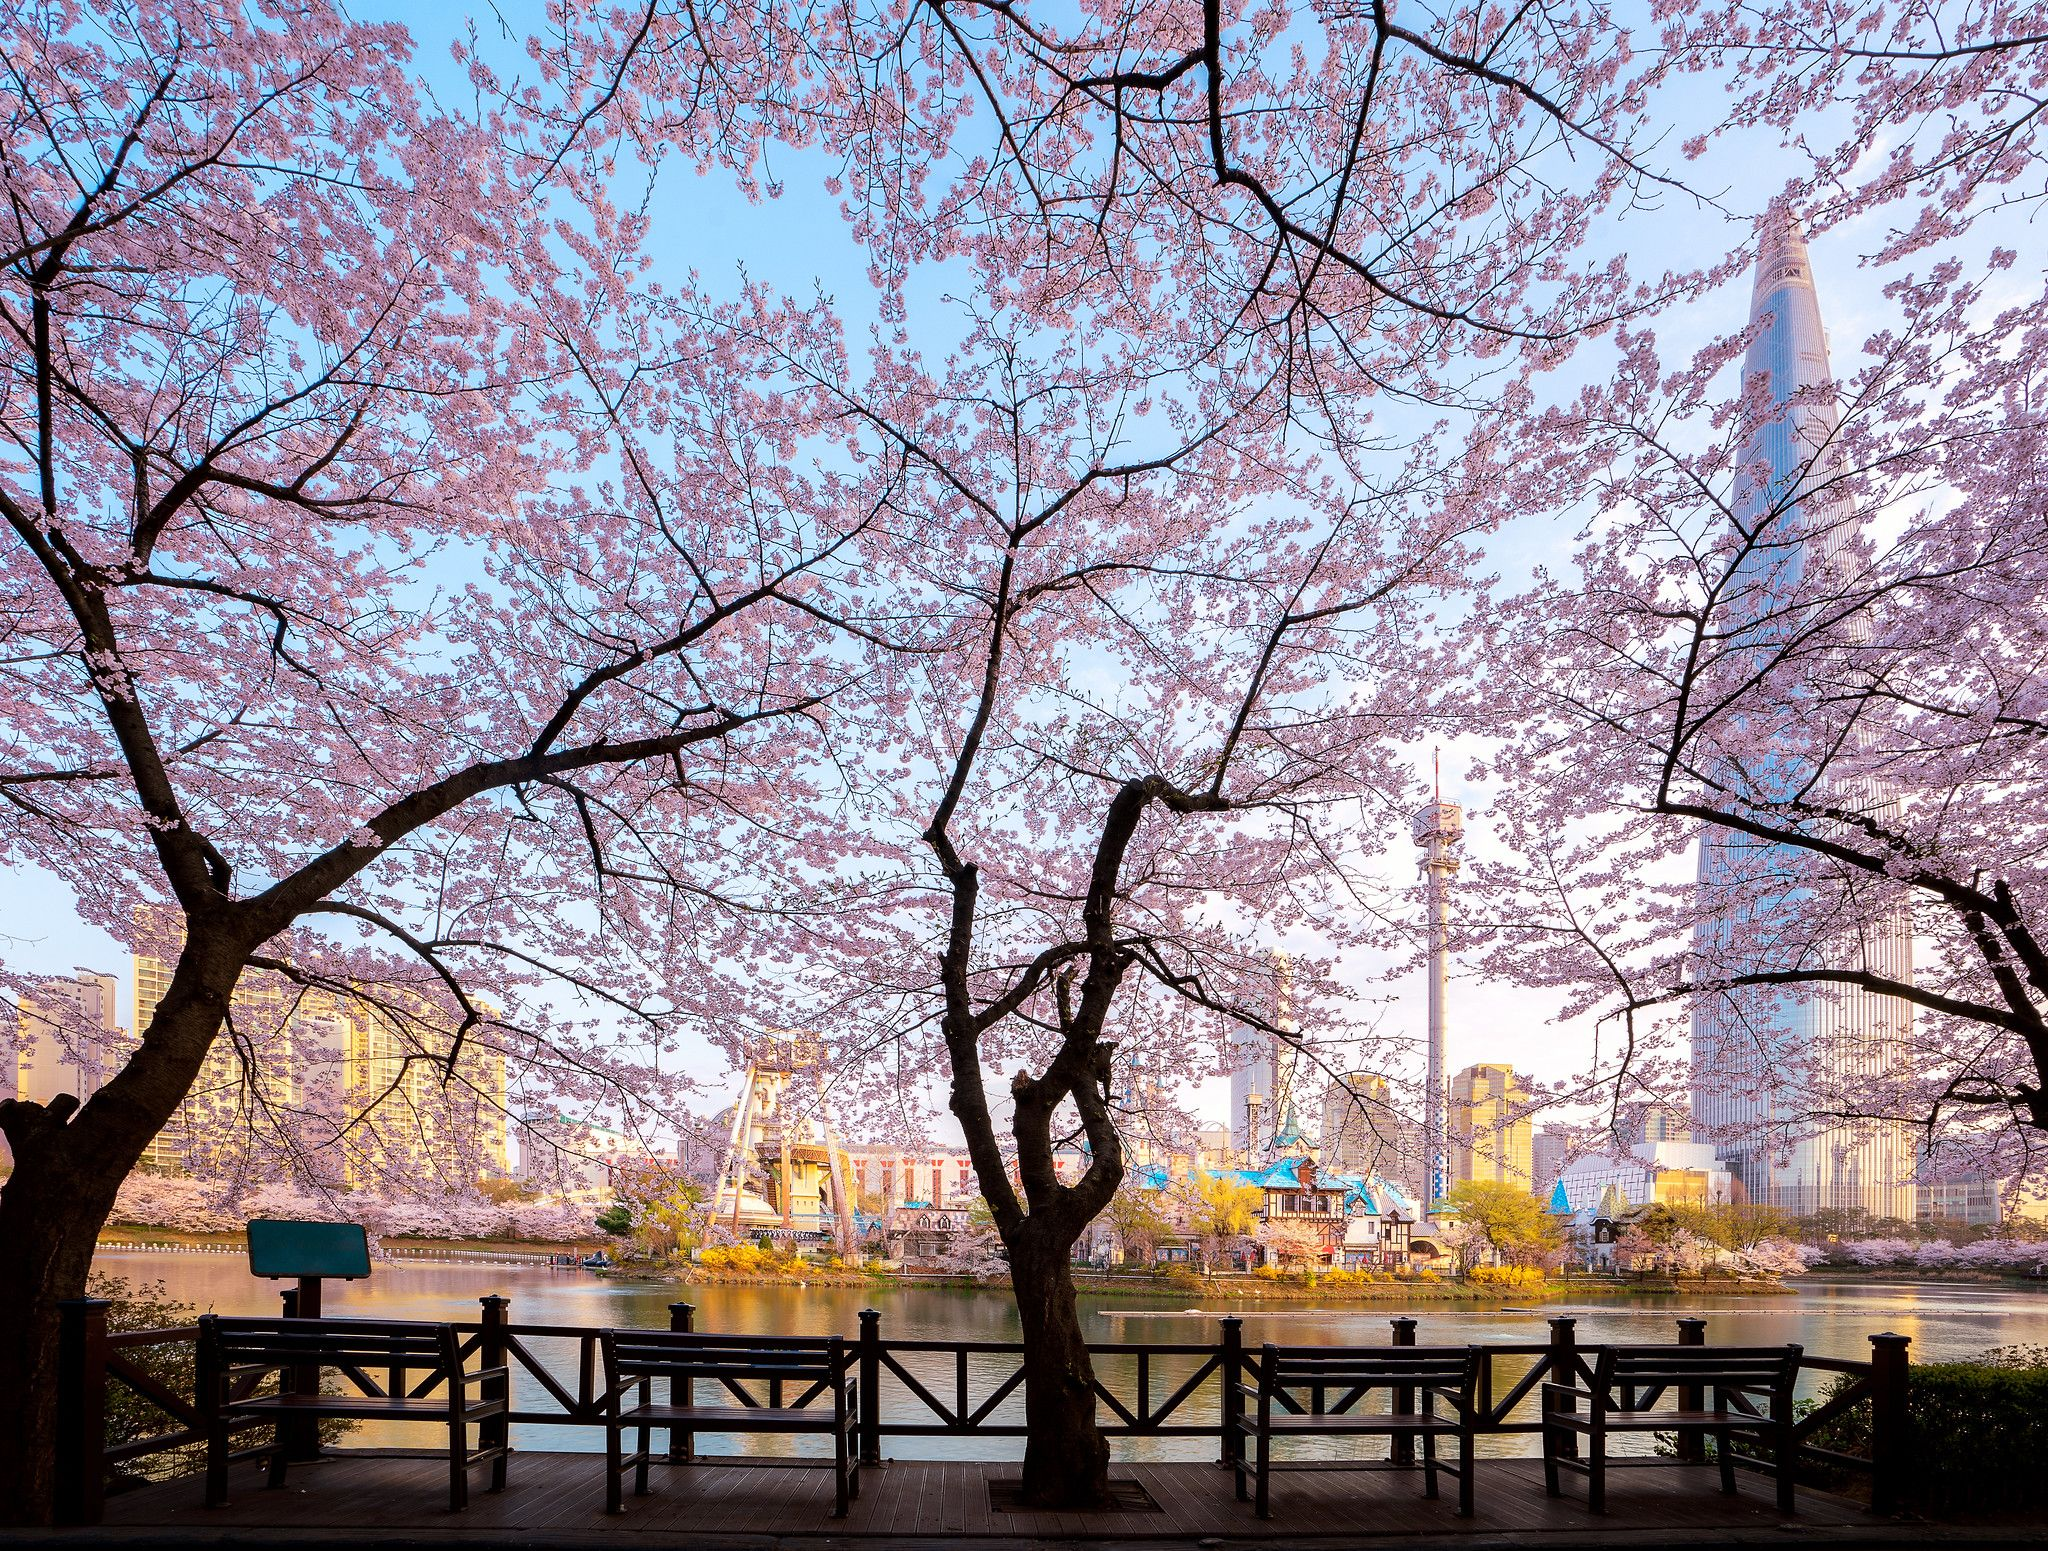 Cherry Blossoms Around Seokchon Lake Park Obscuring The Lotte World Tower Seoul South Korea 20481551 Lotte World Lake Park Seoul Photography